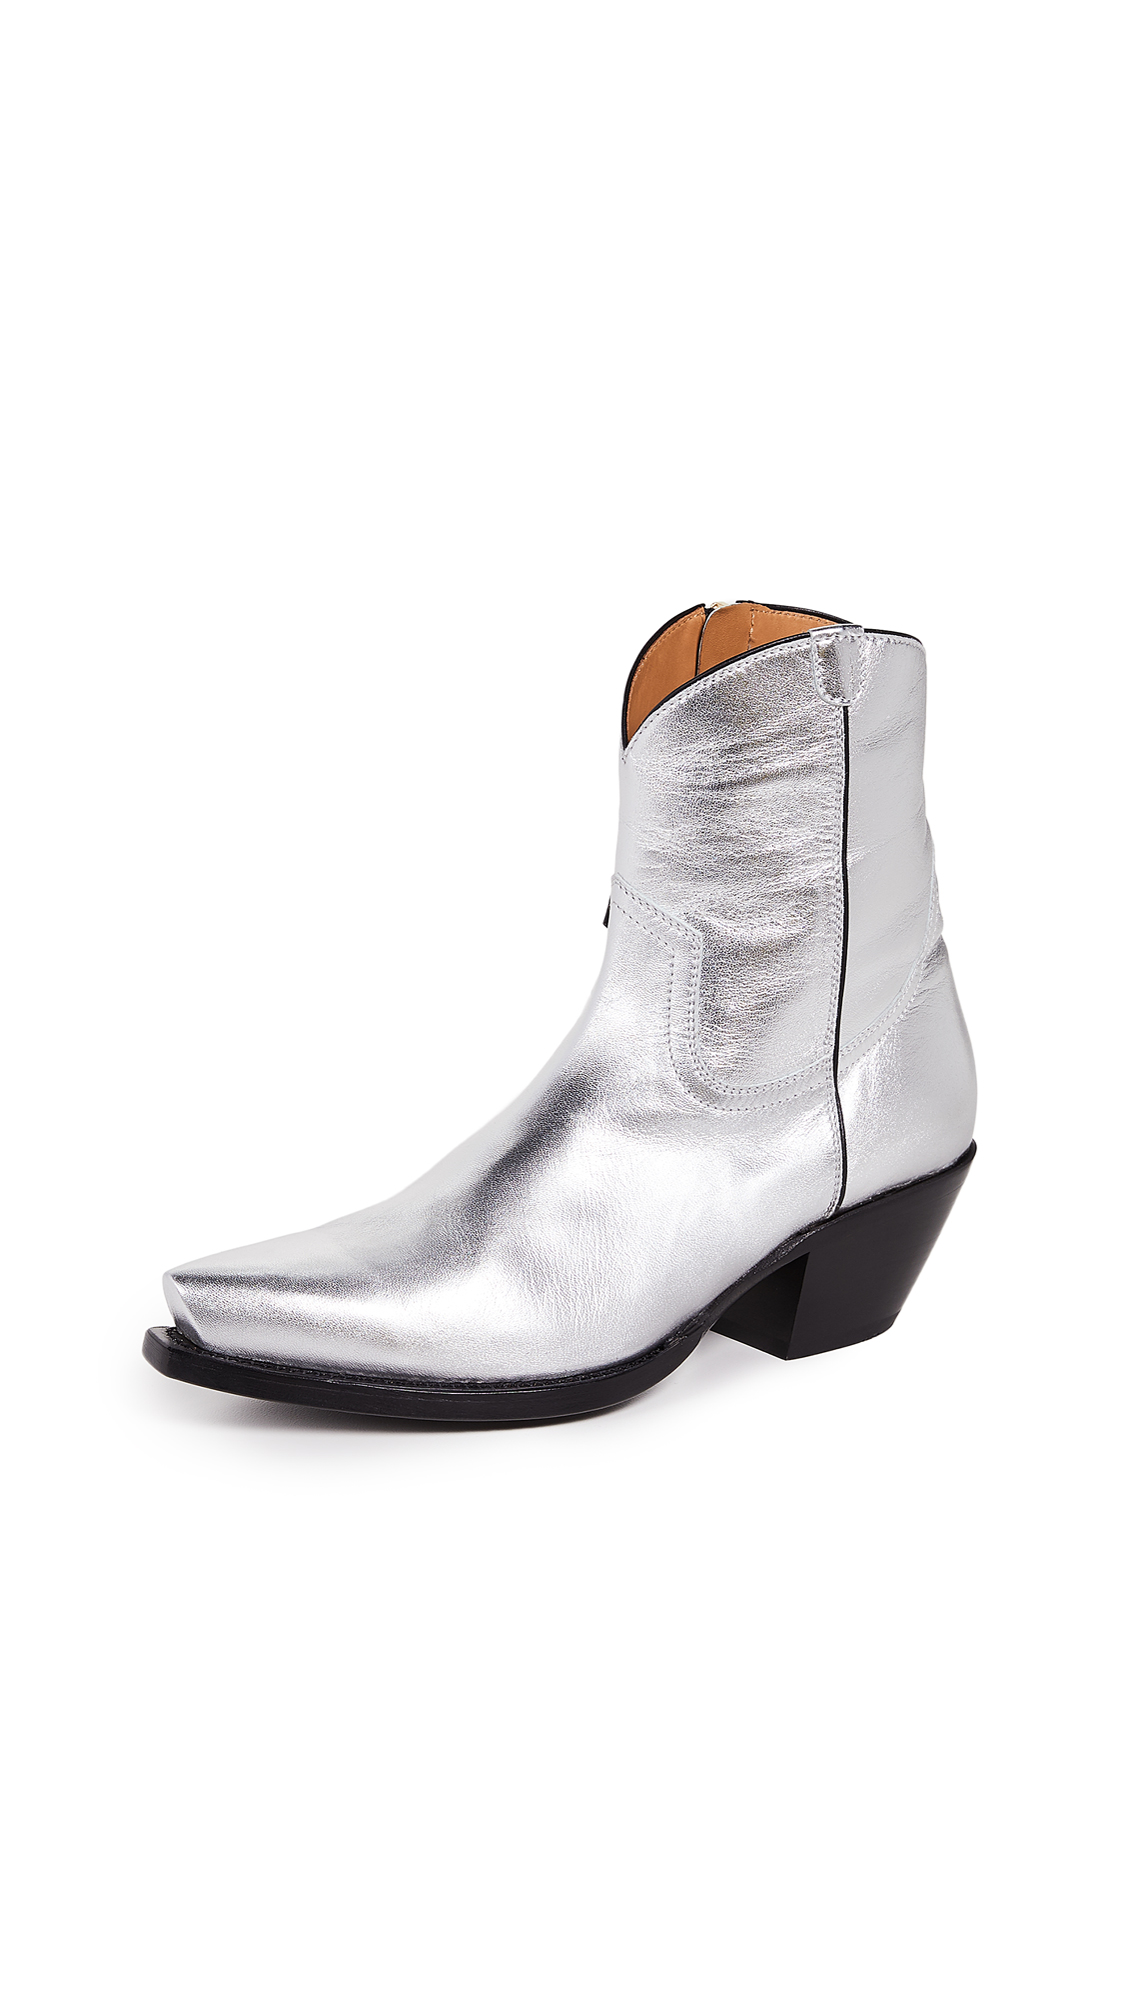 R13 Cowboy Ankle Boots - Silver